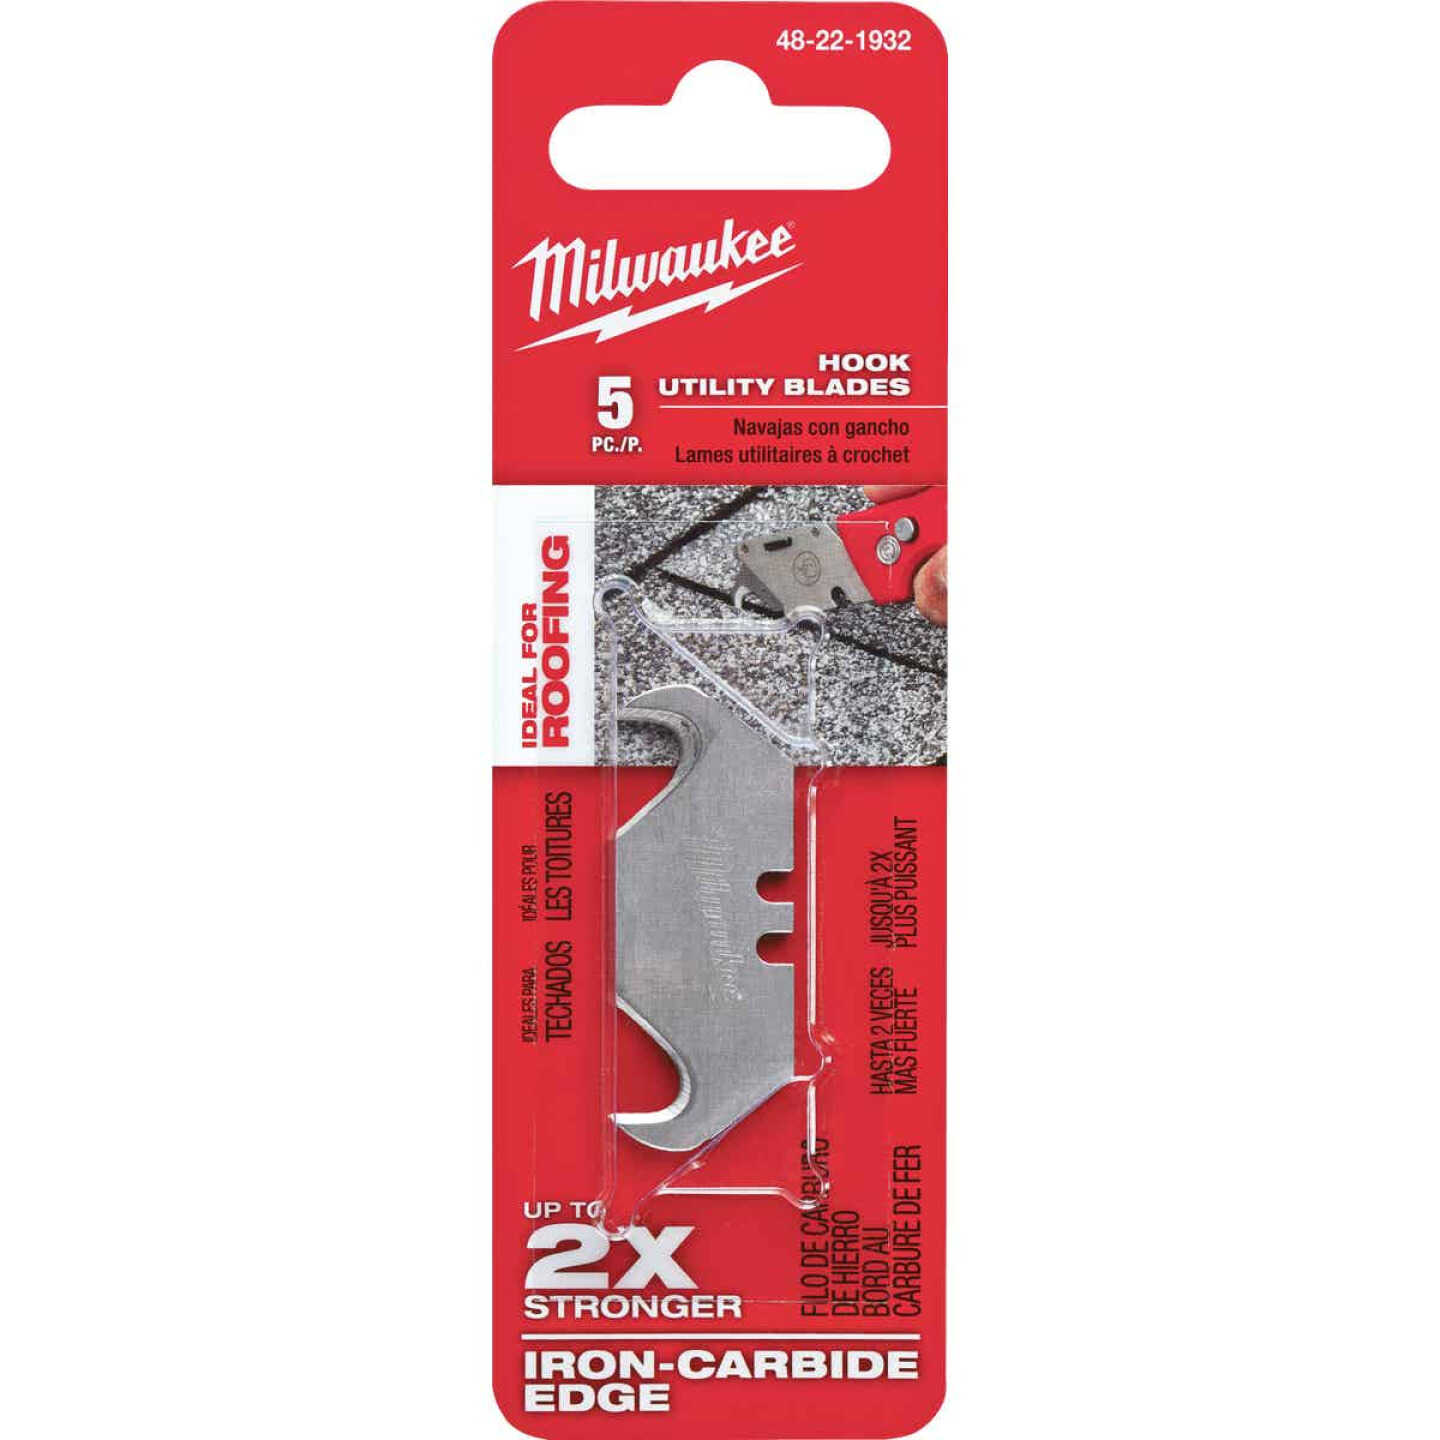 Milwaukee 2-Ended Hook 1-7/8 In. Utility Knife Blade (5-Pack) Image 2